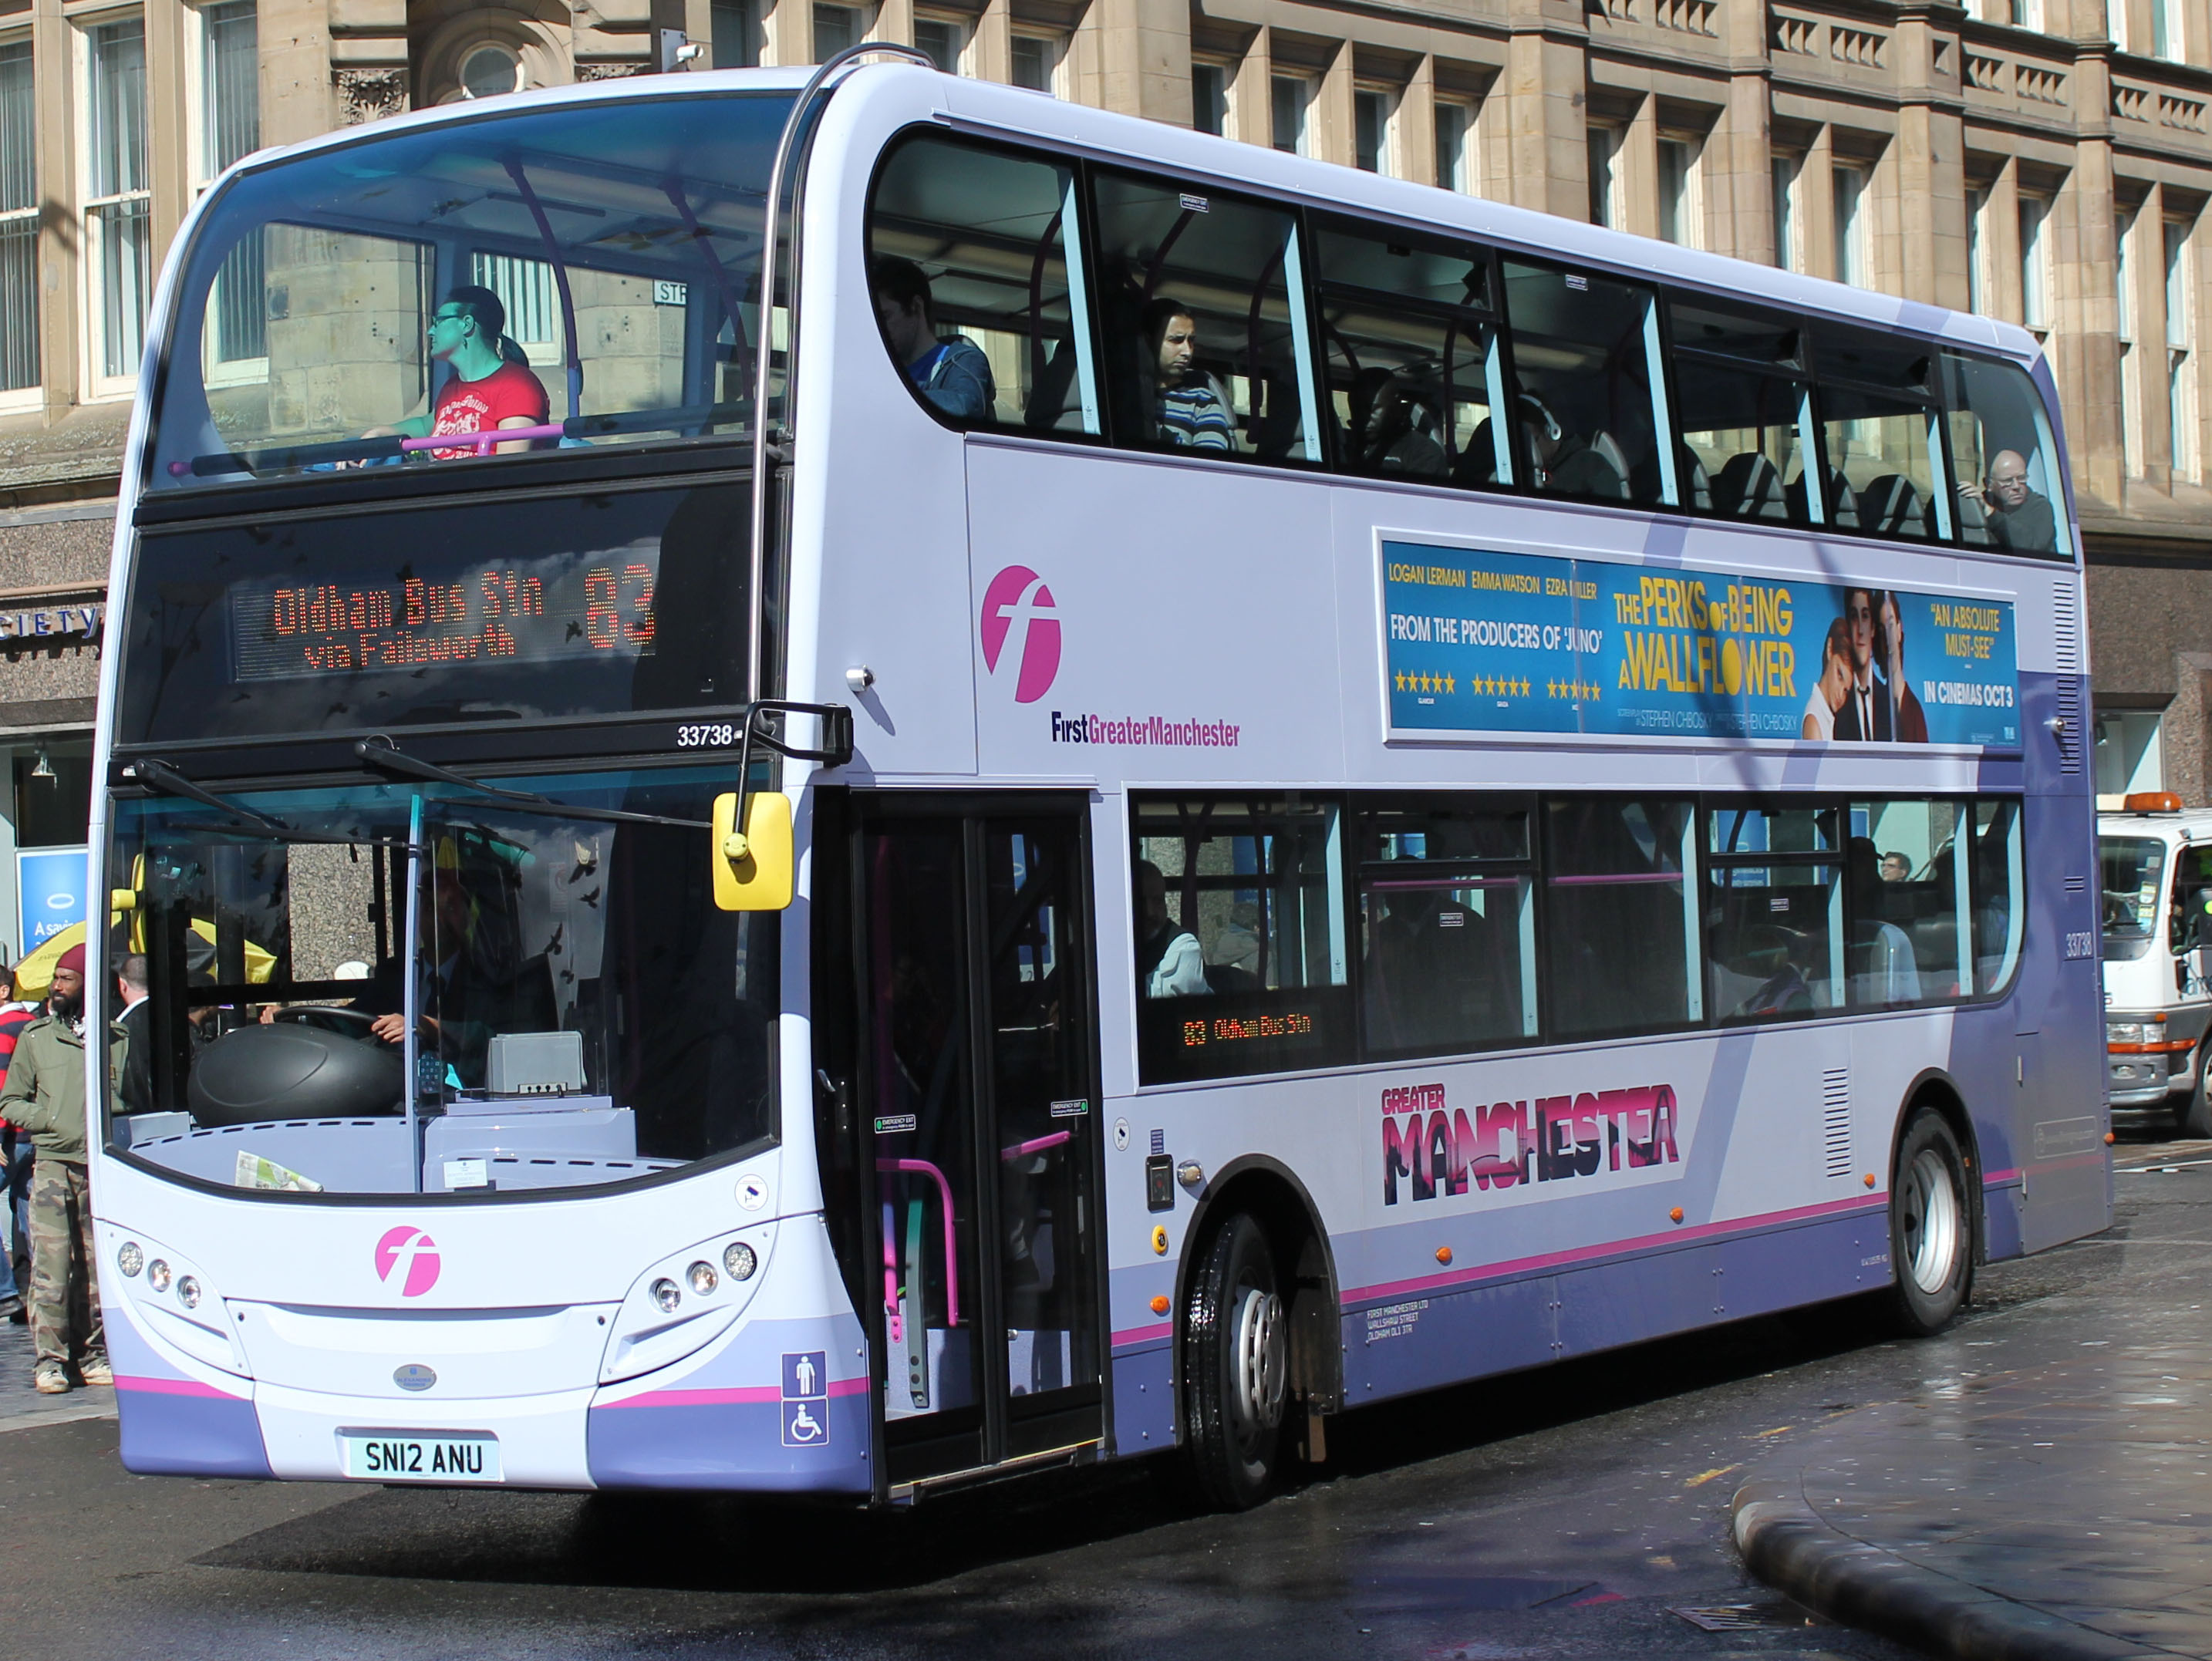 Images – FirstGroup plc